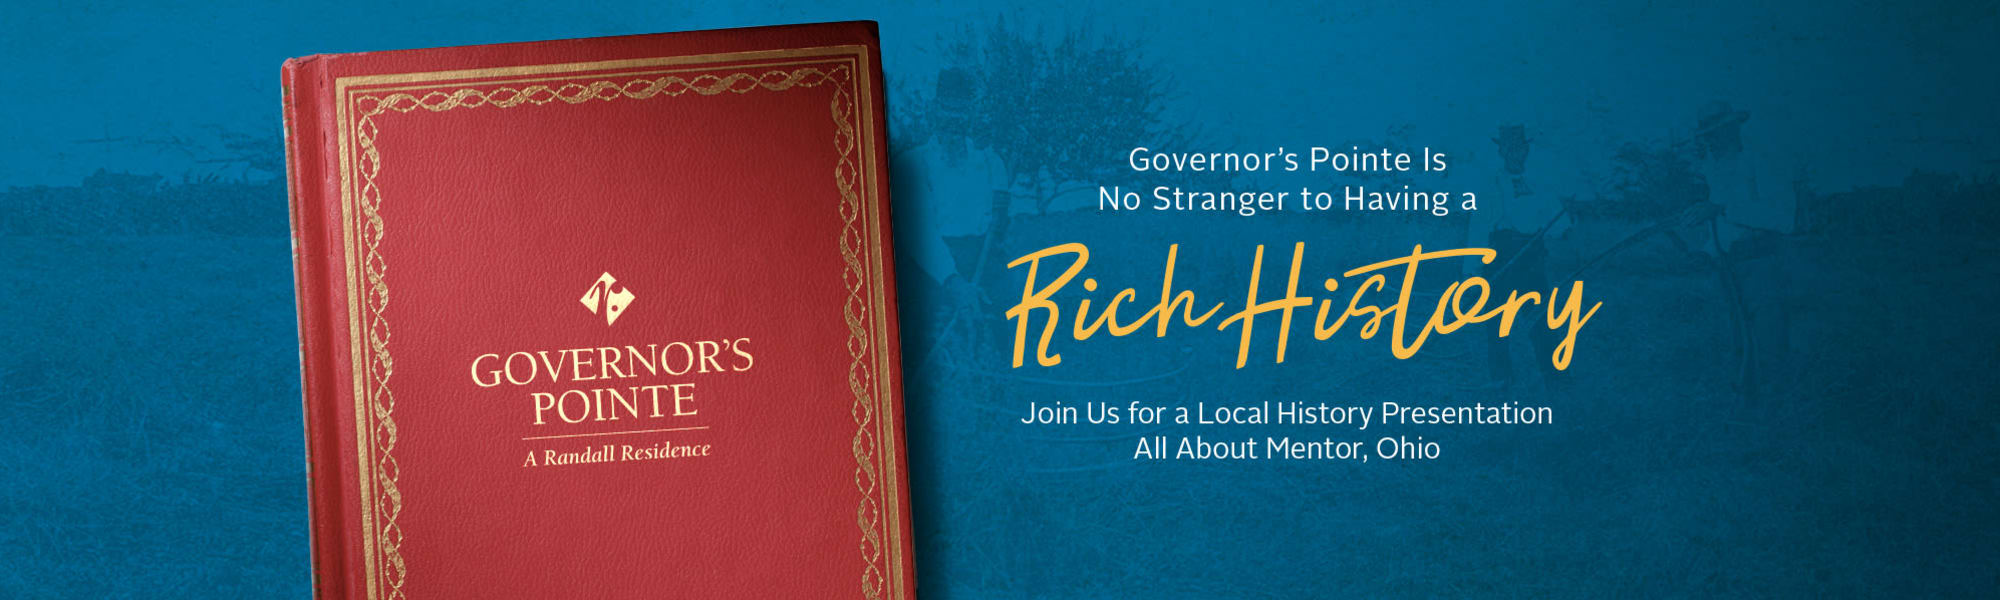 Events at Governor's Pointe in Mentor, Ohio